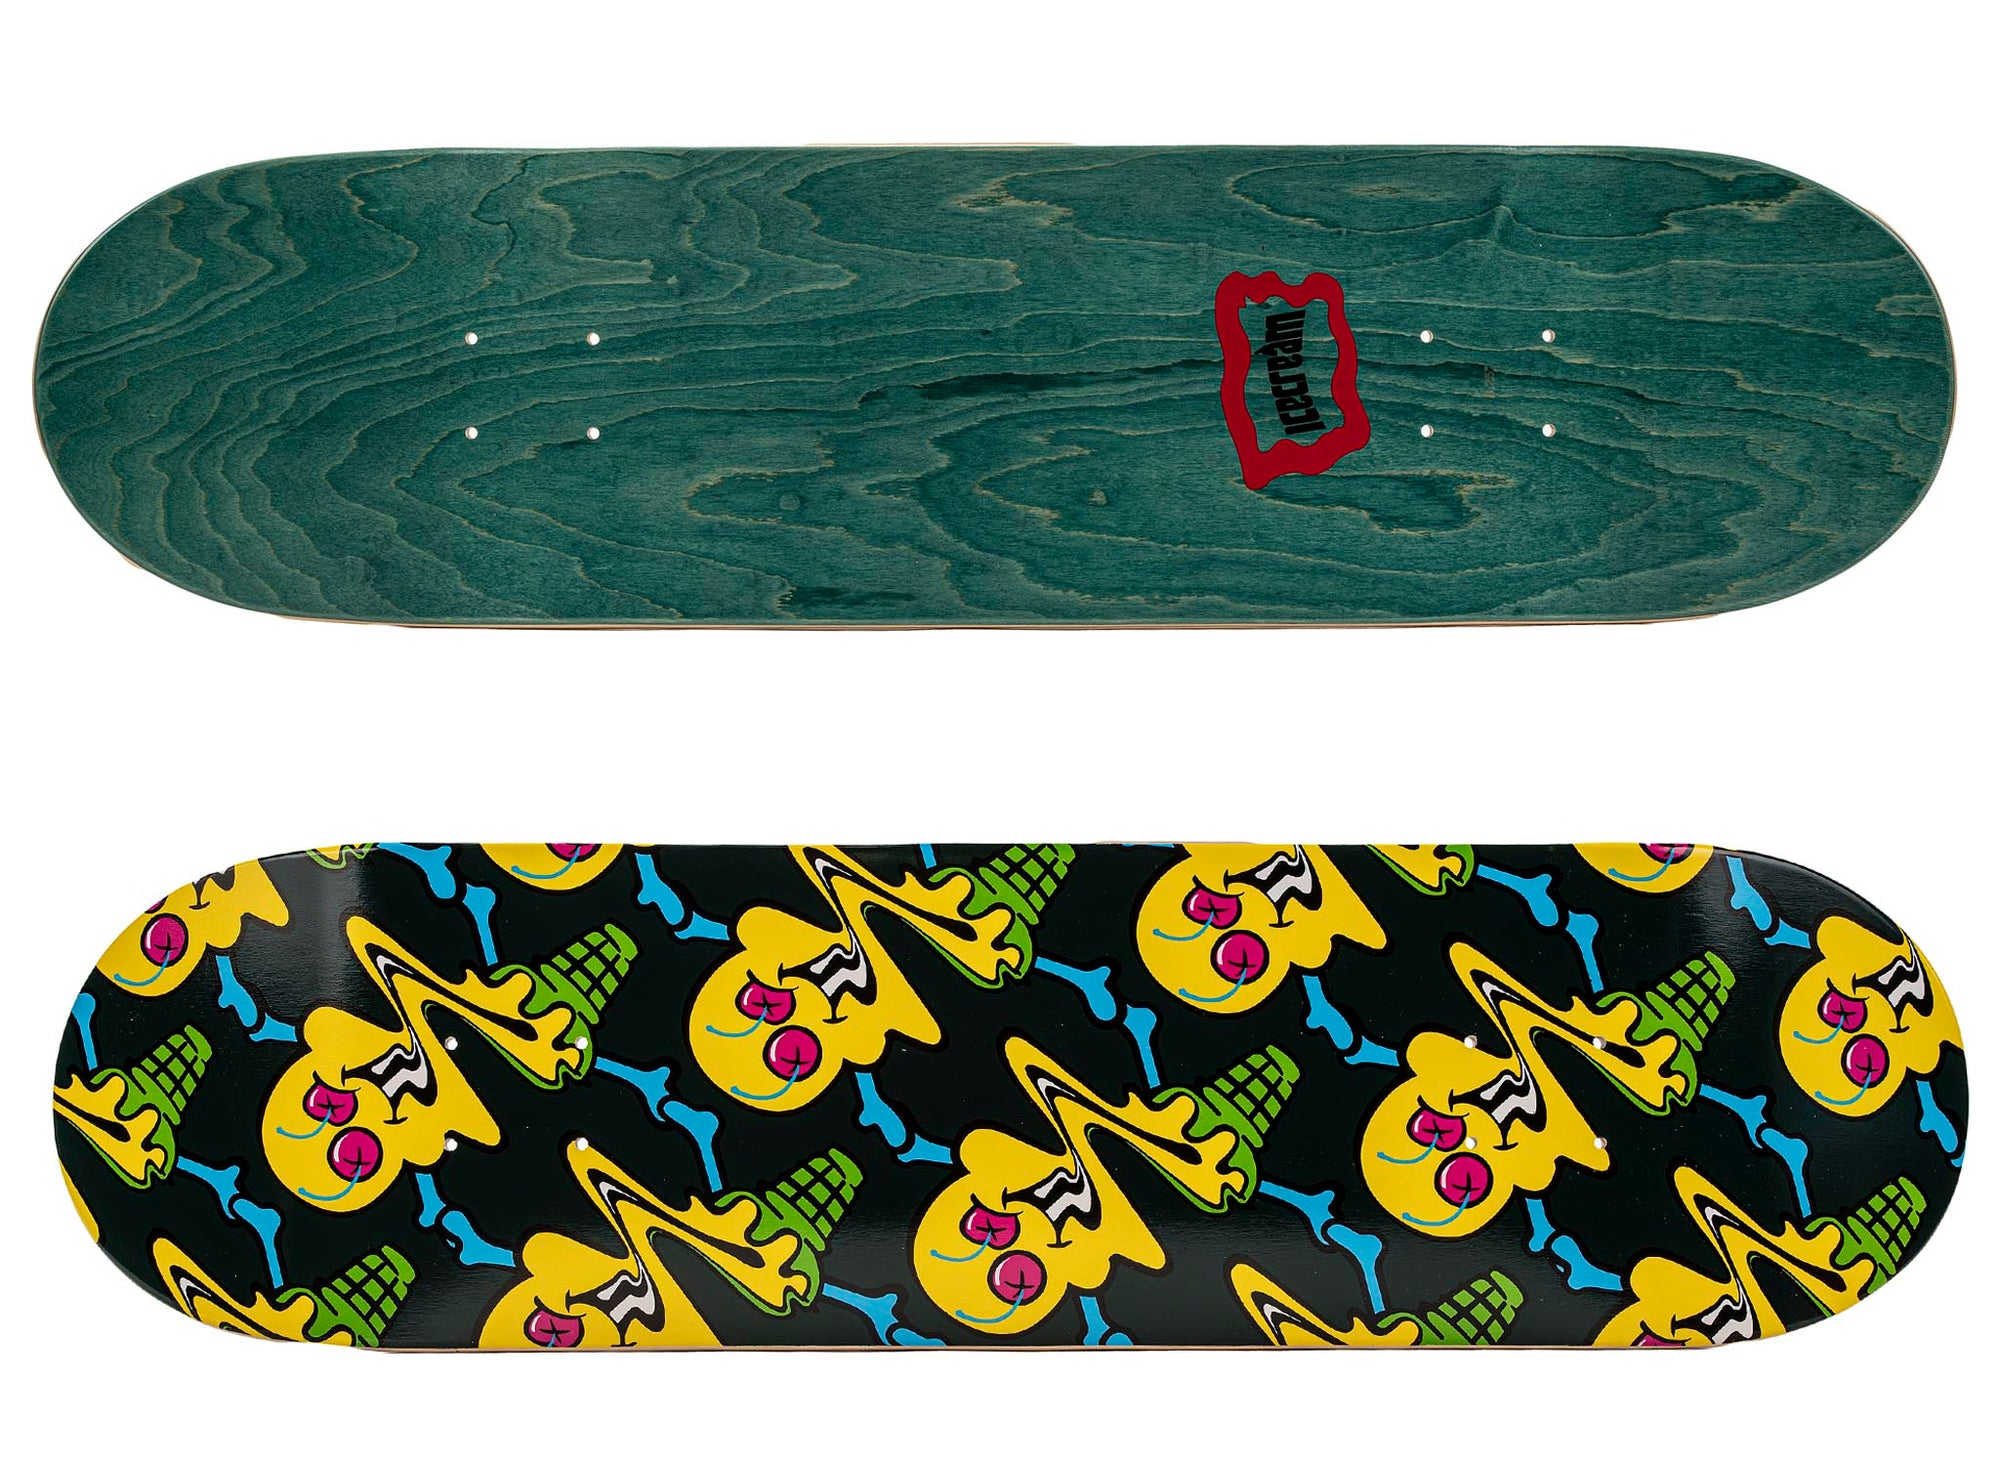 ICE CREAM Woah Skate Deck 'Mallard Green'